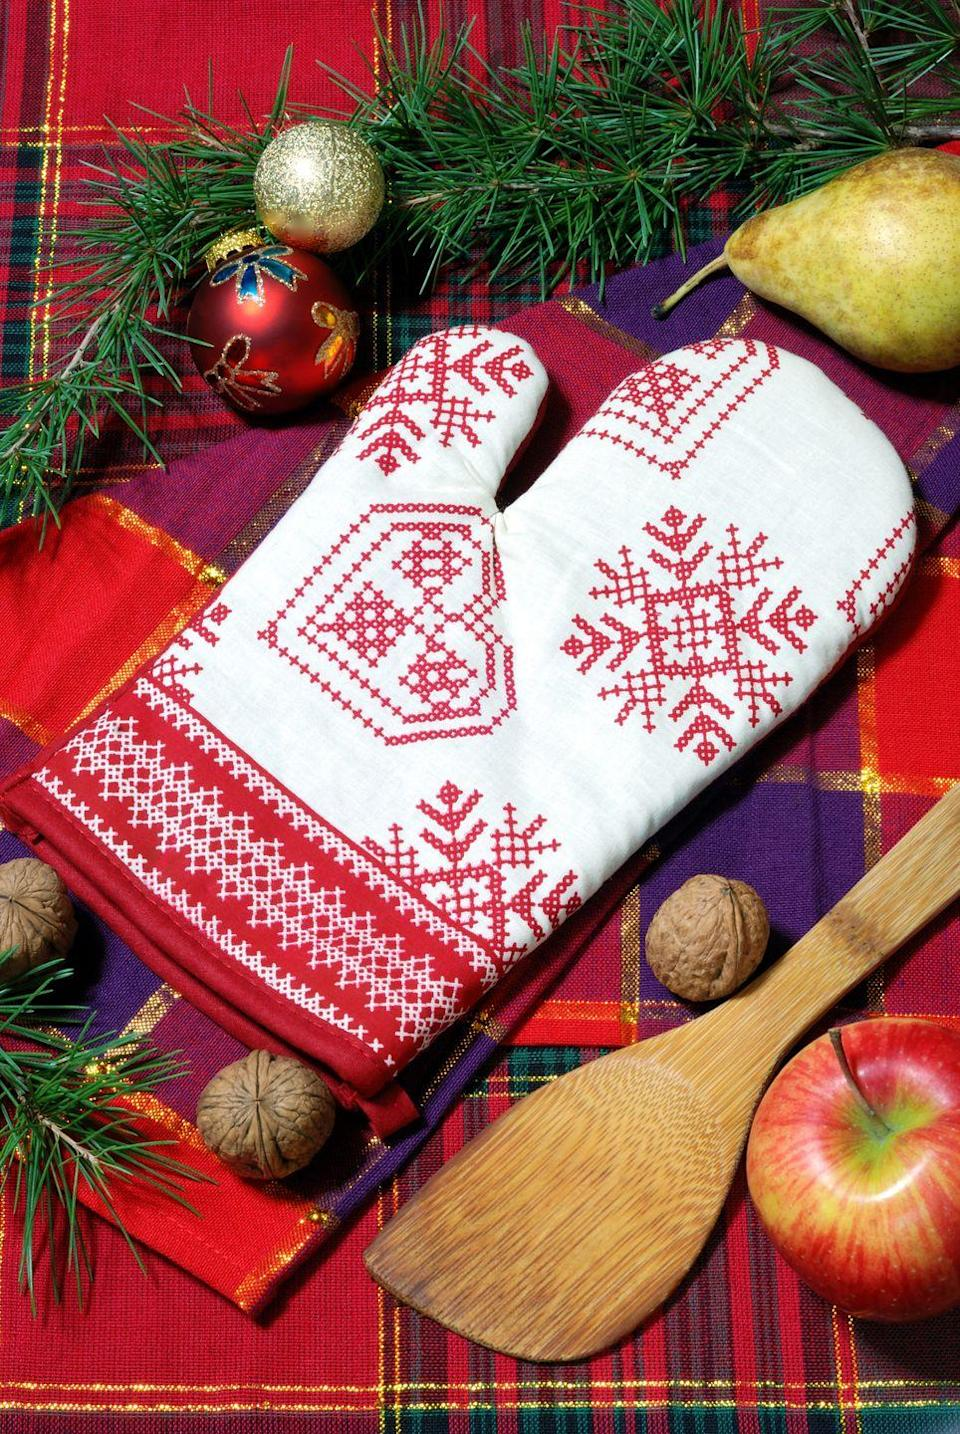 """<p>Opening <a href=""""https://www.goodhousekeeping.com/holiday-gift-ideas/"""" rel=""""nofollow noopener"""" target=""""_blank"""" data-ylk=""""slk:Christmas gifts"""" class=""""link rapid-noclick-resp"""">Christmas gifts</a> while wearing oven mitts is just as hard (and hilarious) as you think. As an added perk, giving unwrapping an element of difficulty will make everyone slow down and savor the moment when opening presents on Christmas morning — not to mention result in some really fun photos.</p><p><em><a href=""""http://rko-ideas-galore.blogspot.com/2010/12/merry-christmitts-game.html"""" rel=""""nofollow noopener"""" target=""""_blank"""" data-ylk=""""slk:Get the tutorial from Karen's Ideas Galore »"""" class=""""link rapid-noclick-resp"""">Get the tutorial from Karen's Ideas Galore »</a></em></p>"""